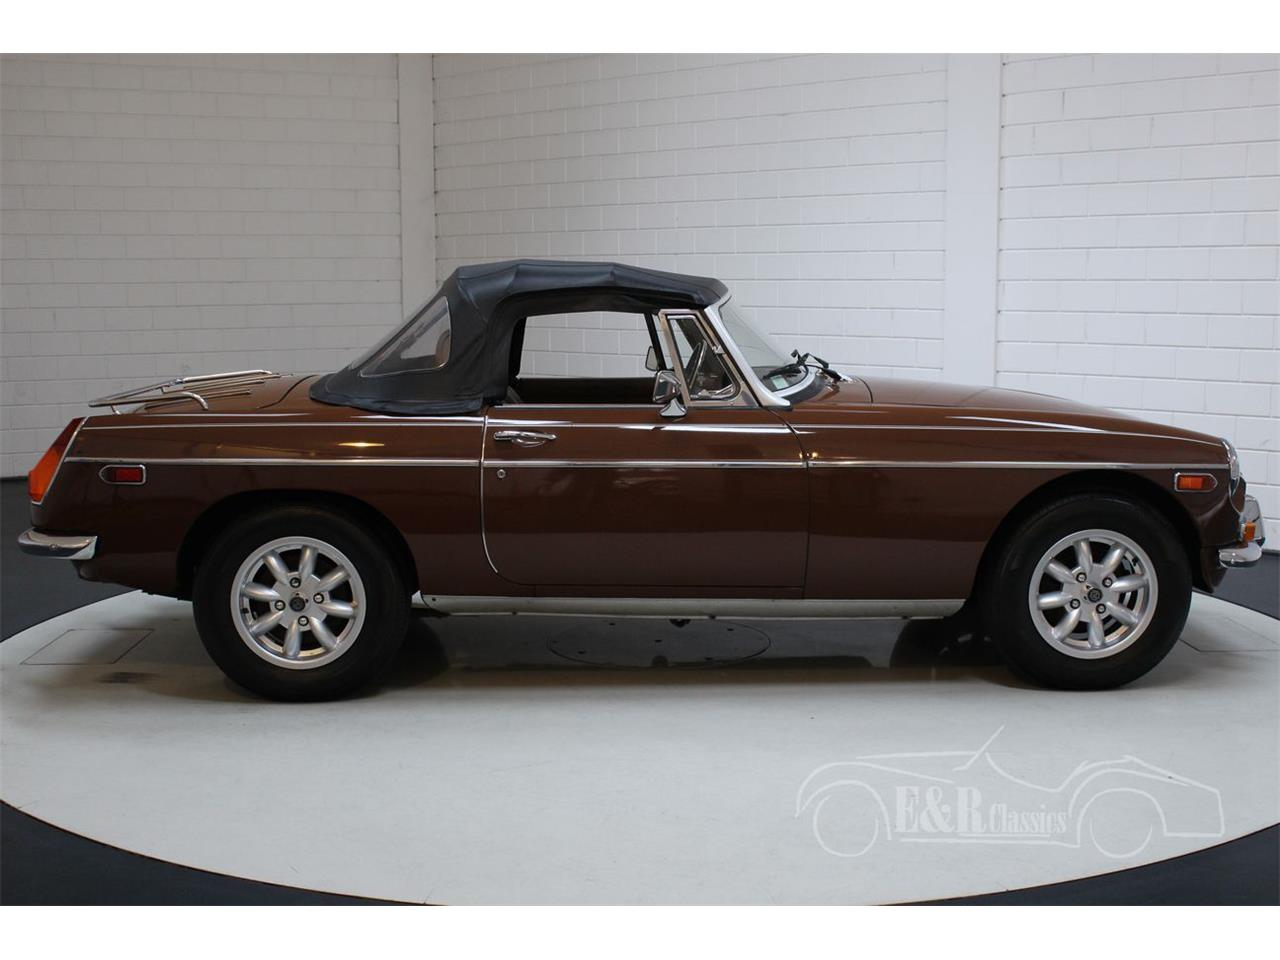 1980 MG MGB (CC-1422585) for sale in Waalwijk, Noord Brabant